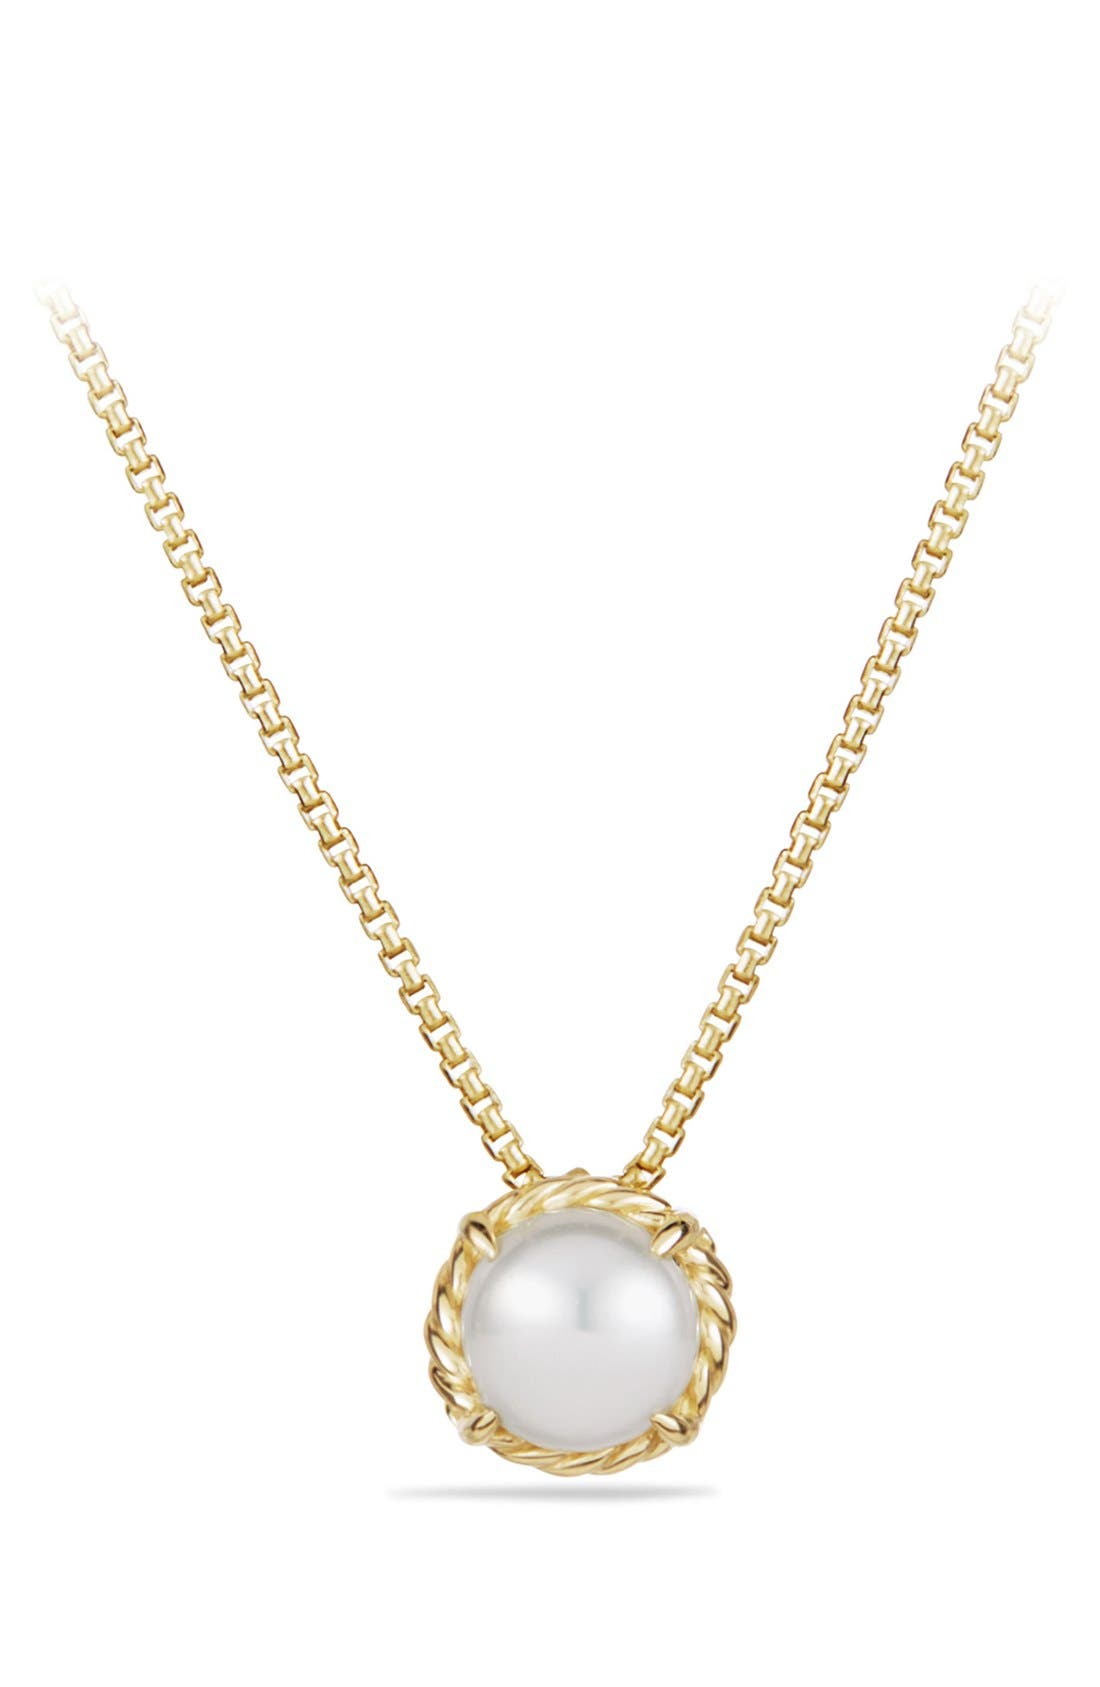 Alternate Image 1 Selected - David Yurman 'Châtelaine' Pendant Necklace with Freshwater Pearl in 18K Gold